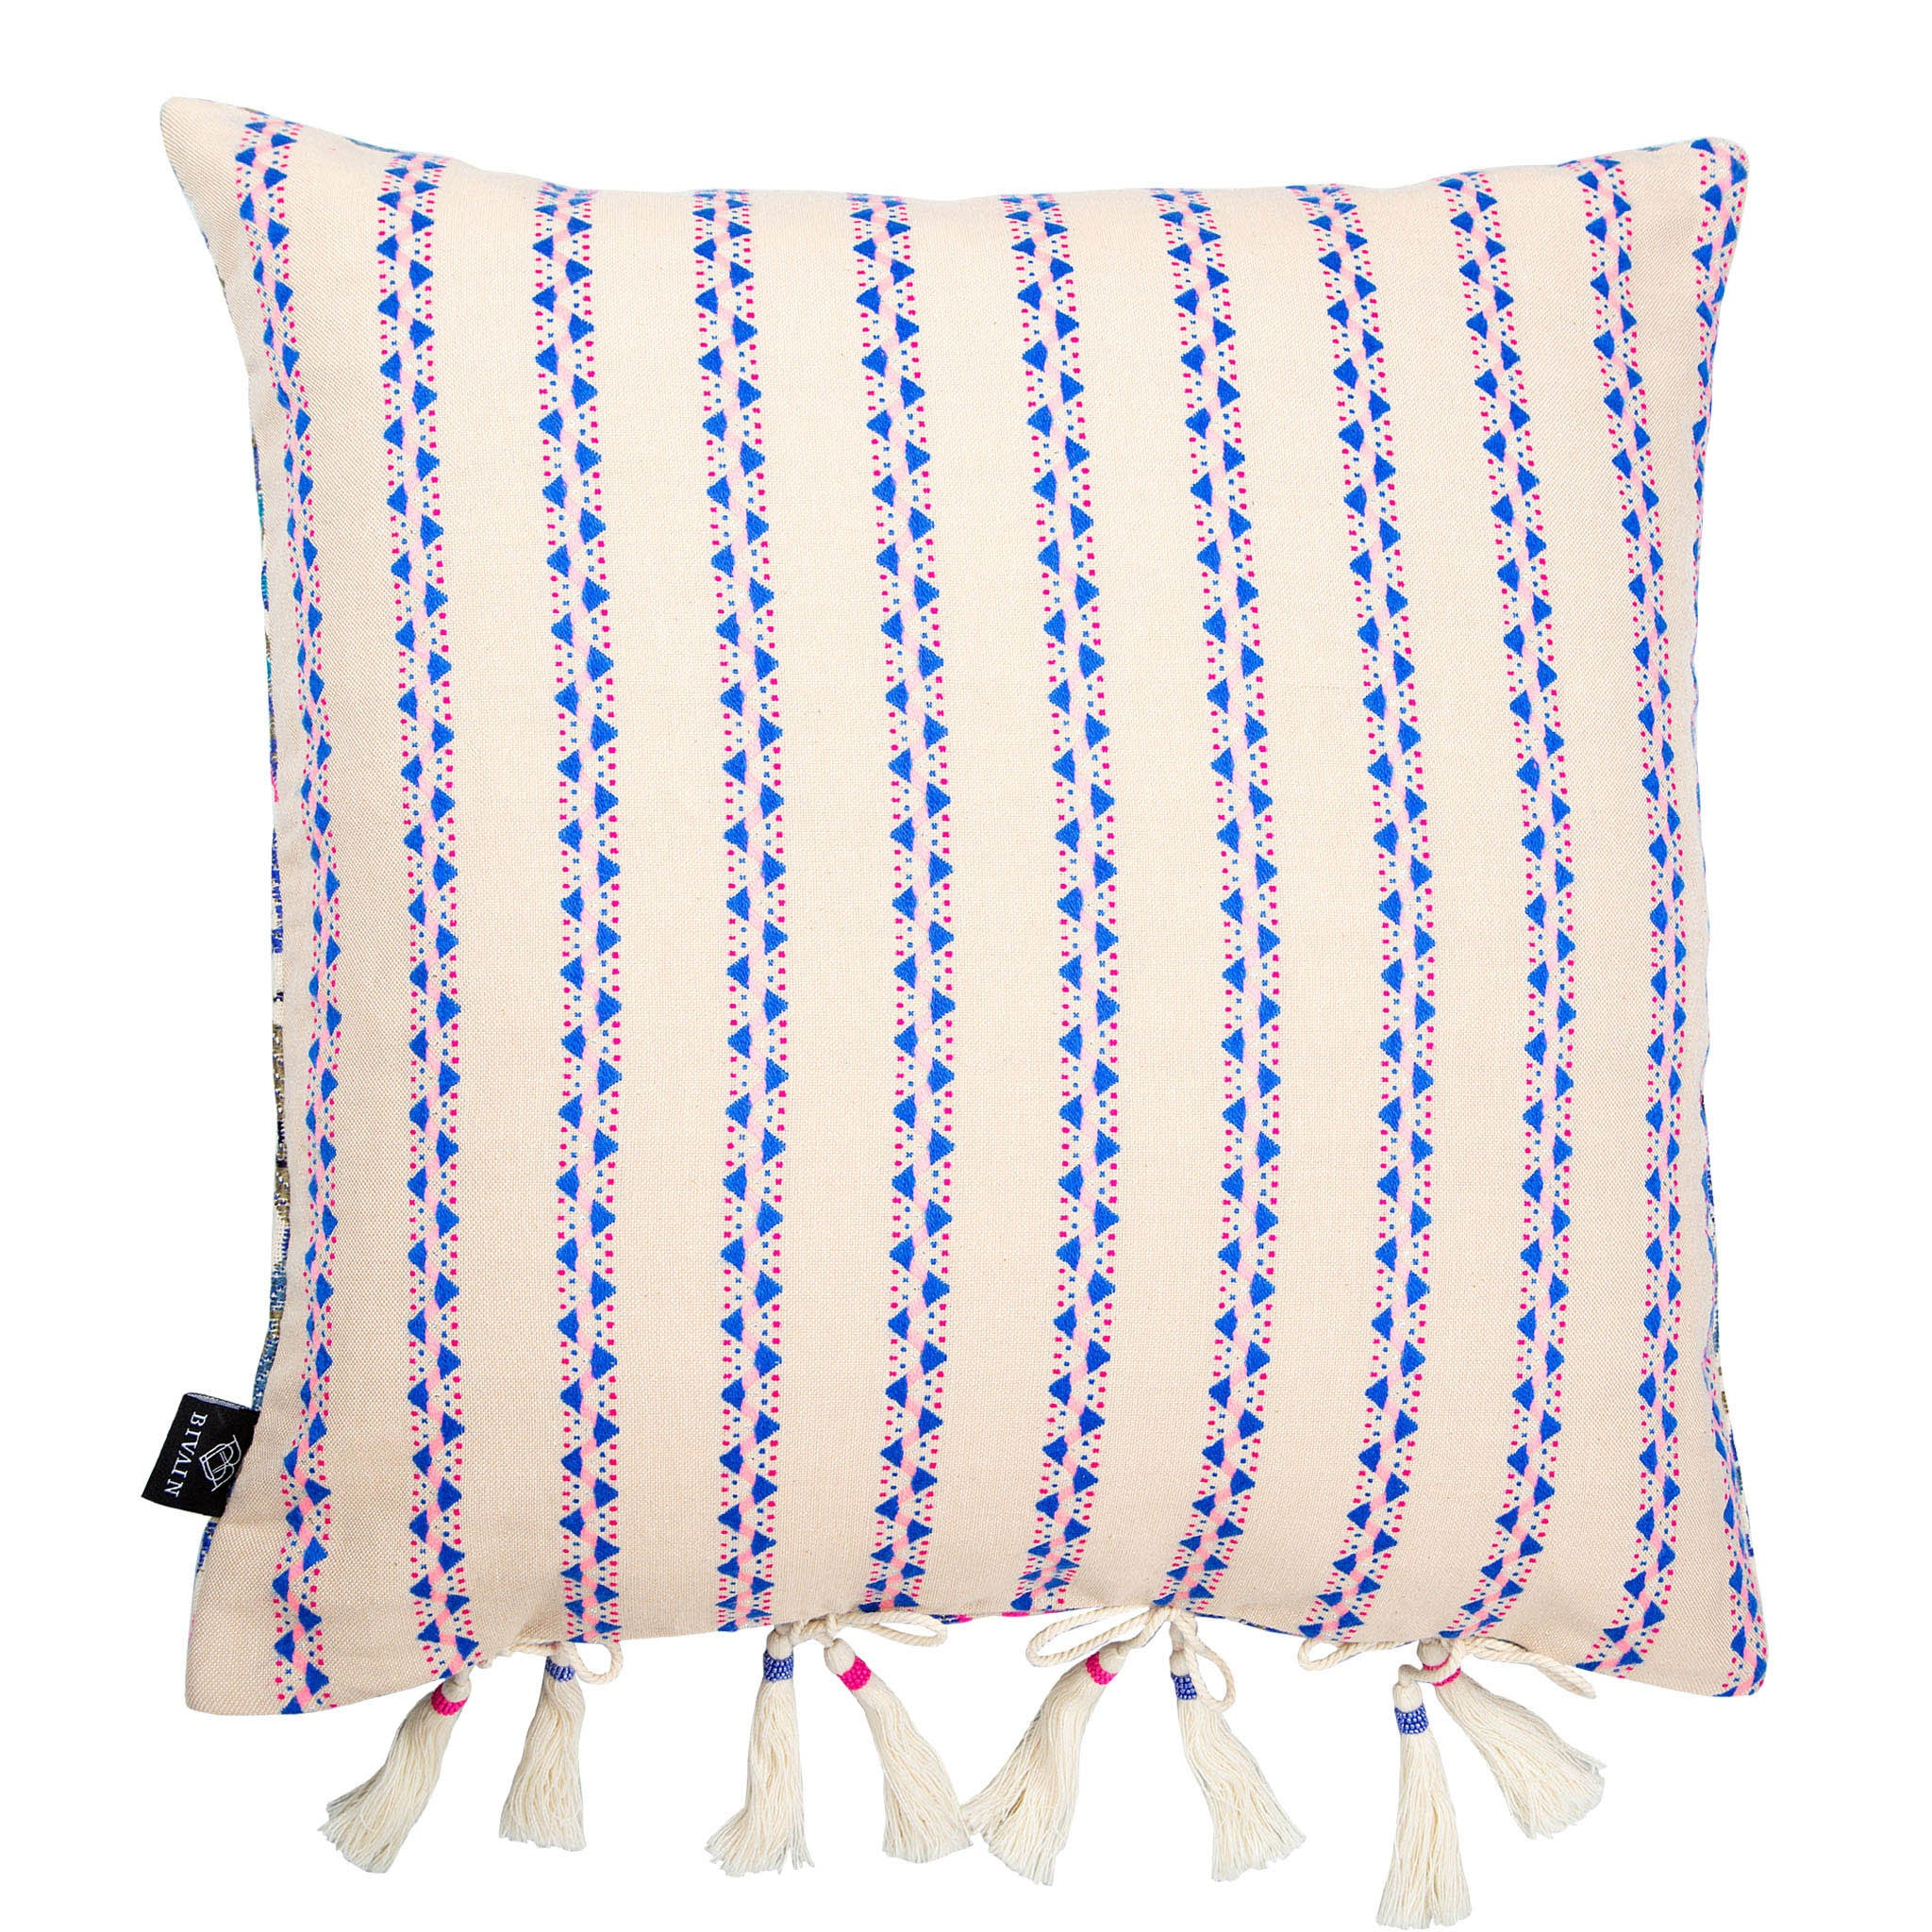 Bedouin-style pink, blue & white cotton tasselled cushion - Bivain - 2